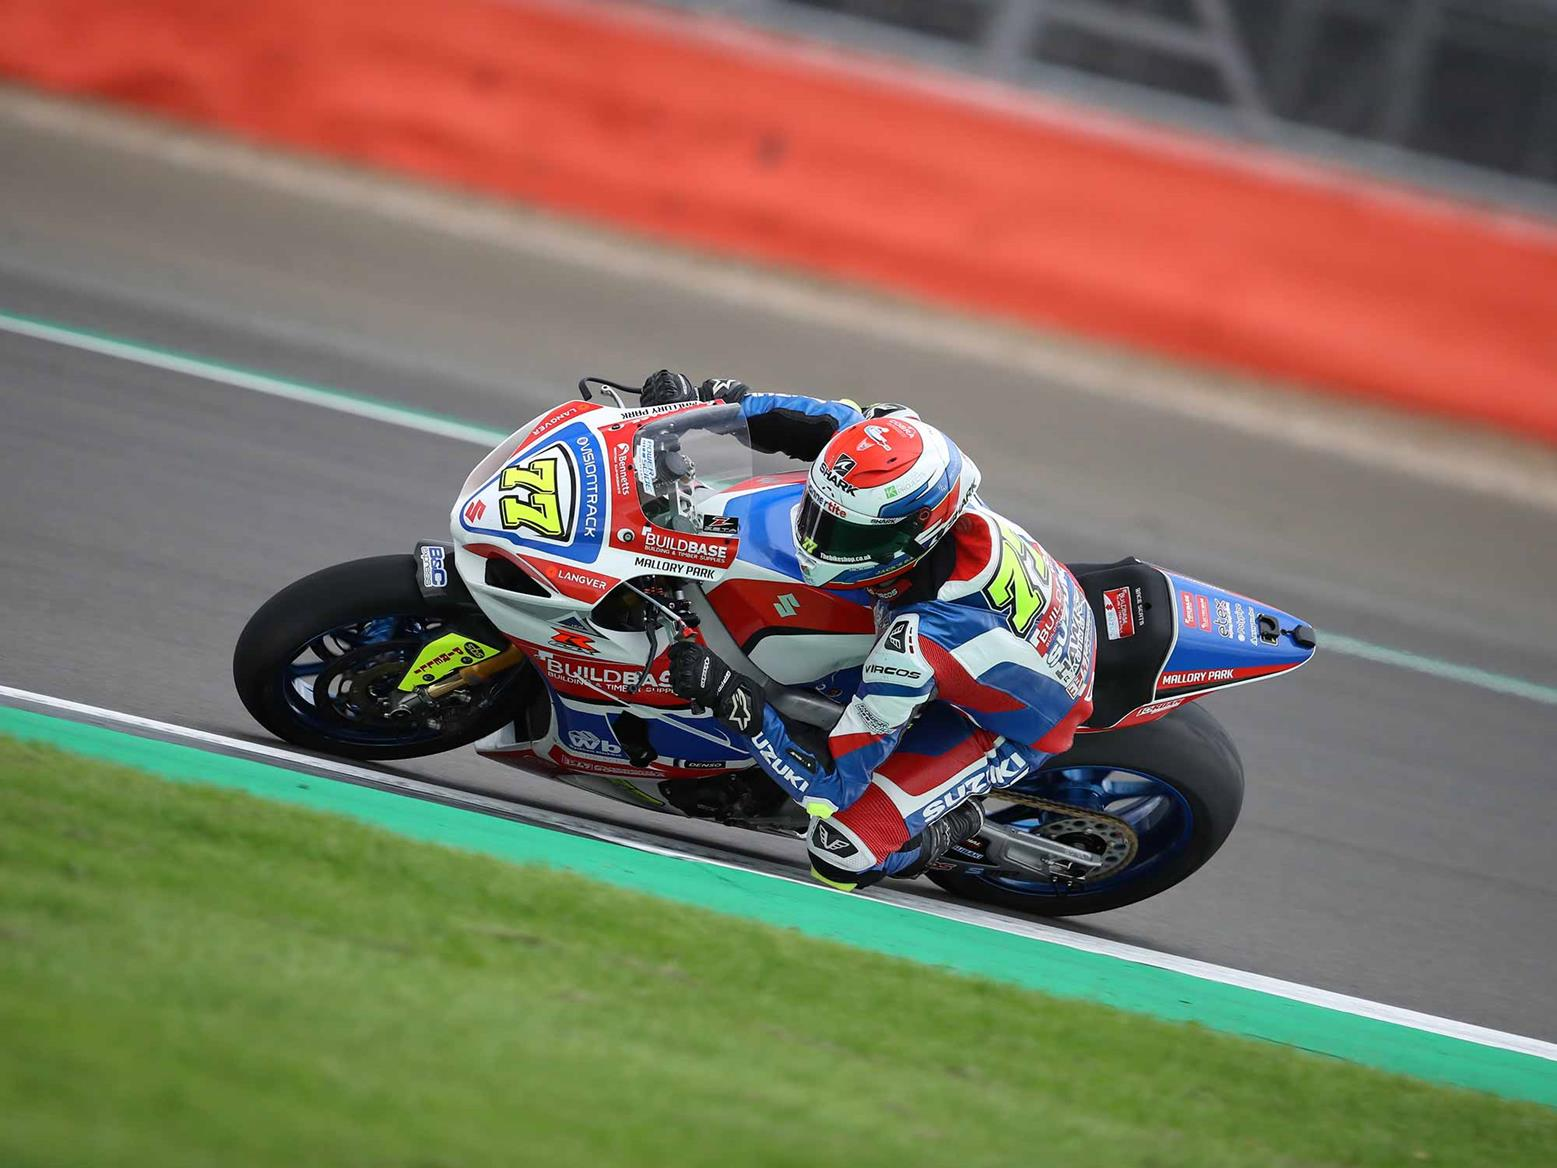 Kyle Ryde wins at Silverstone